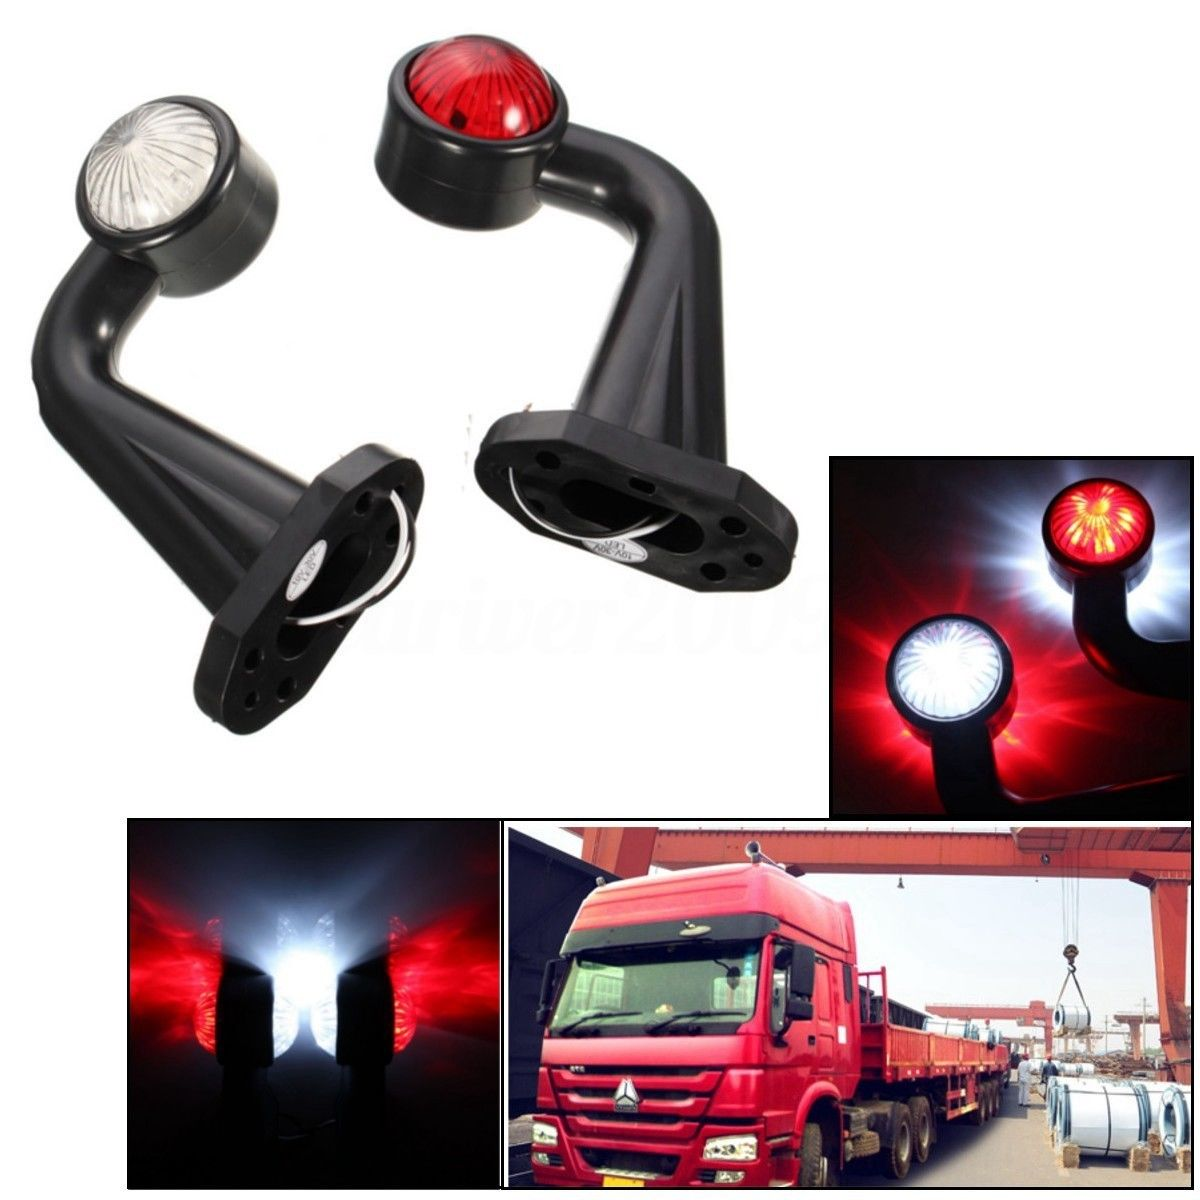 2Pcs Car External Lights 12 LED 12V 24V Truck Elbow Side Marker Indicator Light Lamp Side Marked Lamp For Truck Trailer Lorry citall 10pcs car trailer truck boat lorry van 2 led amber clearance lamp side marker signal light for ford audi a4 vw kia mazda